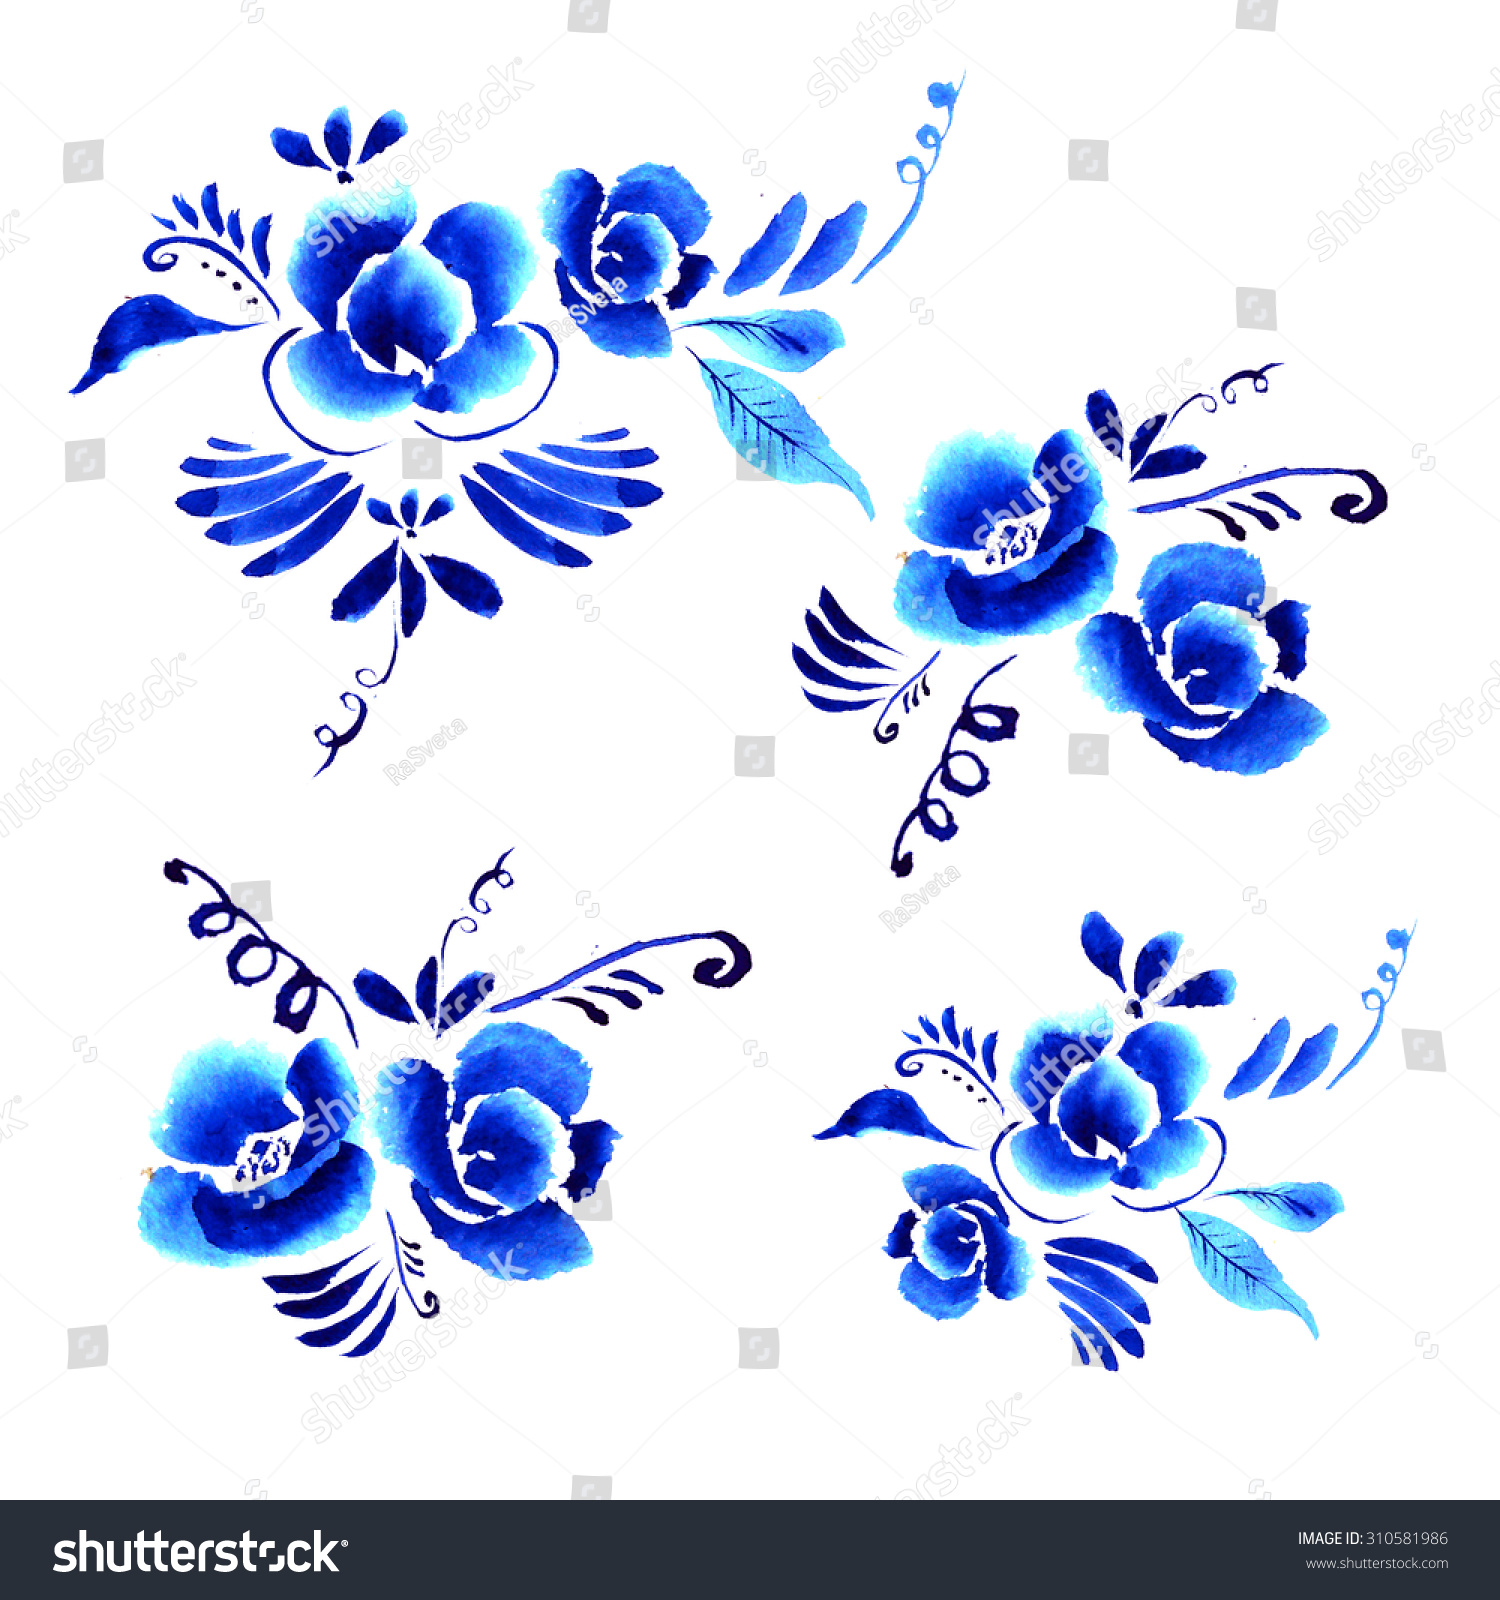 Artistic floral element abstract gzhel folk art blue flowers stock - Abstract Floral Background Pattern With Folk Art Flowers Blue White Gzhel Ornament Can